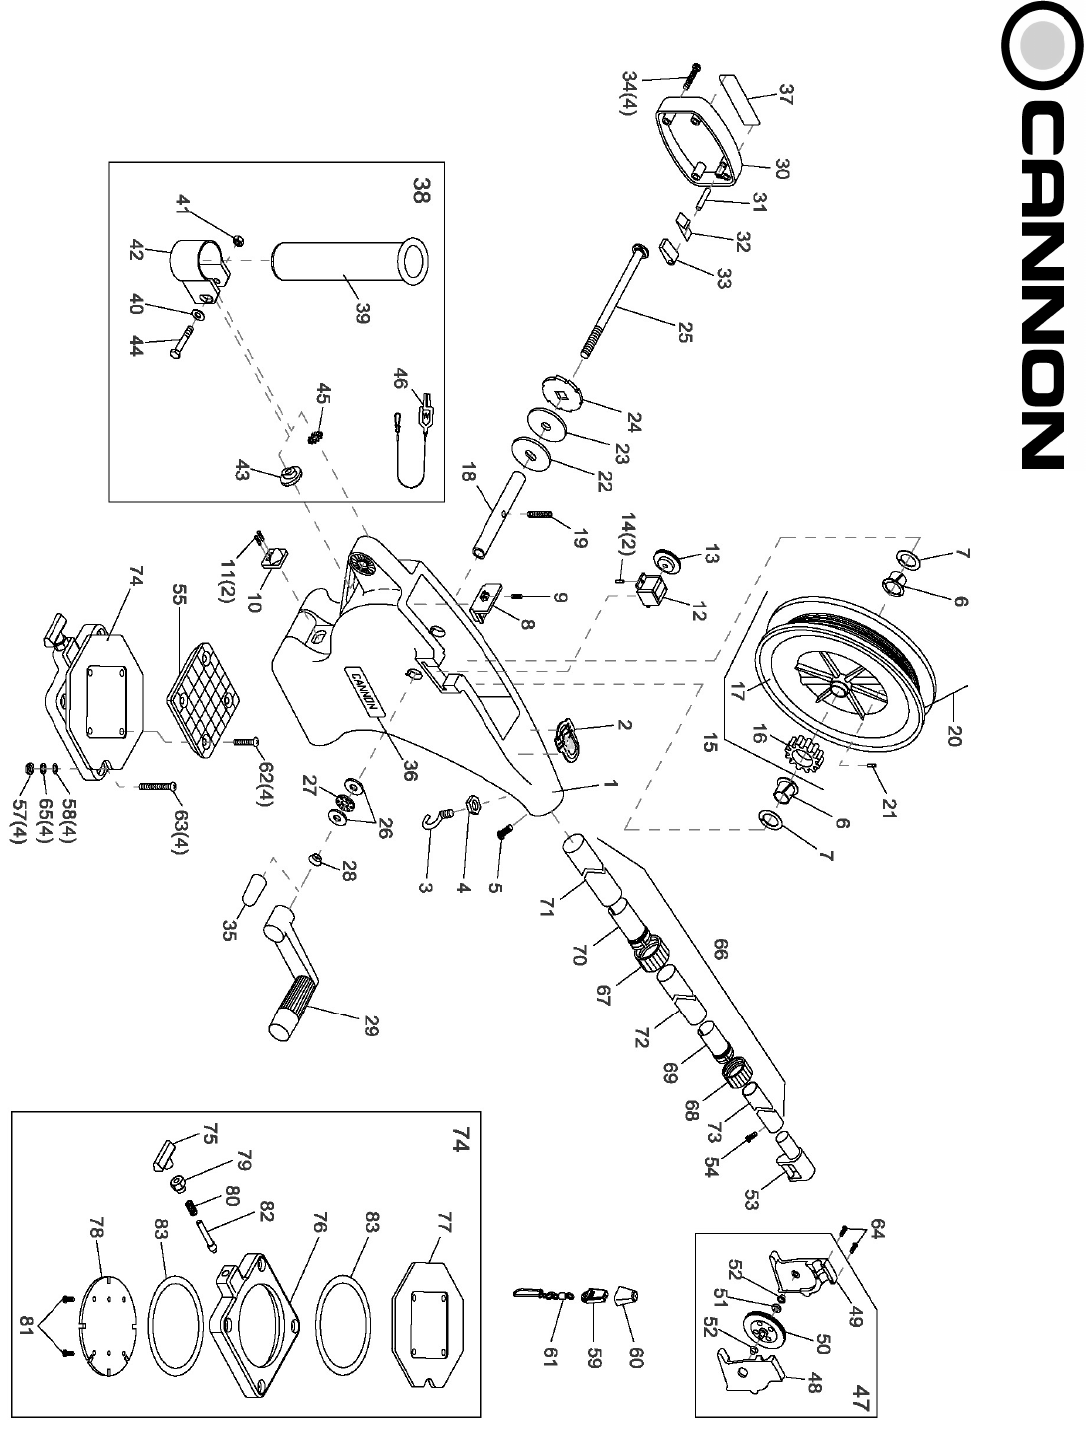 Cannon 10TS User Manual To The Aa12047b efd9 8d34 d92c